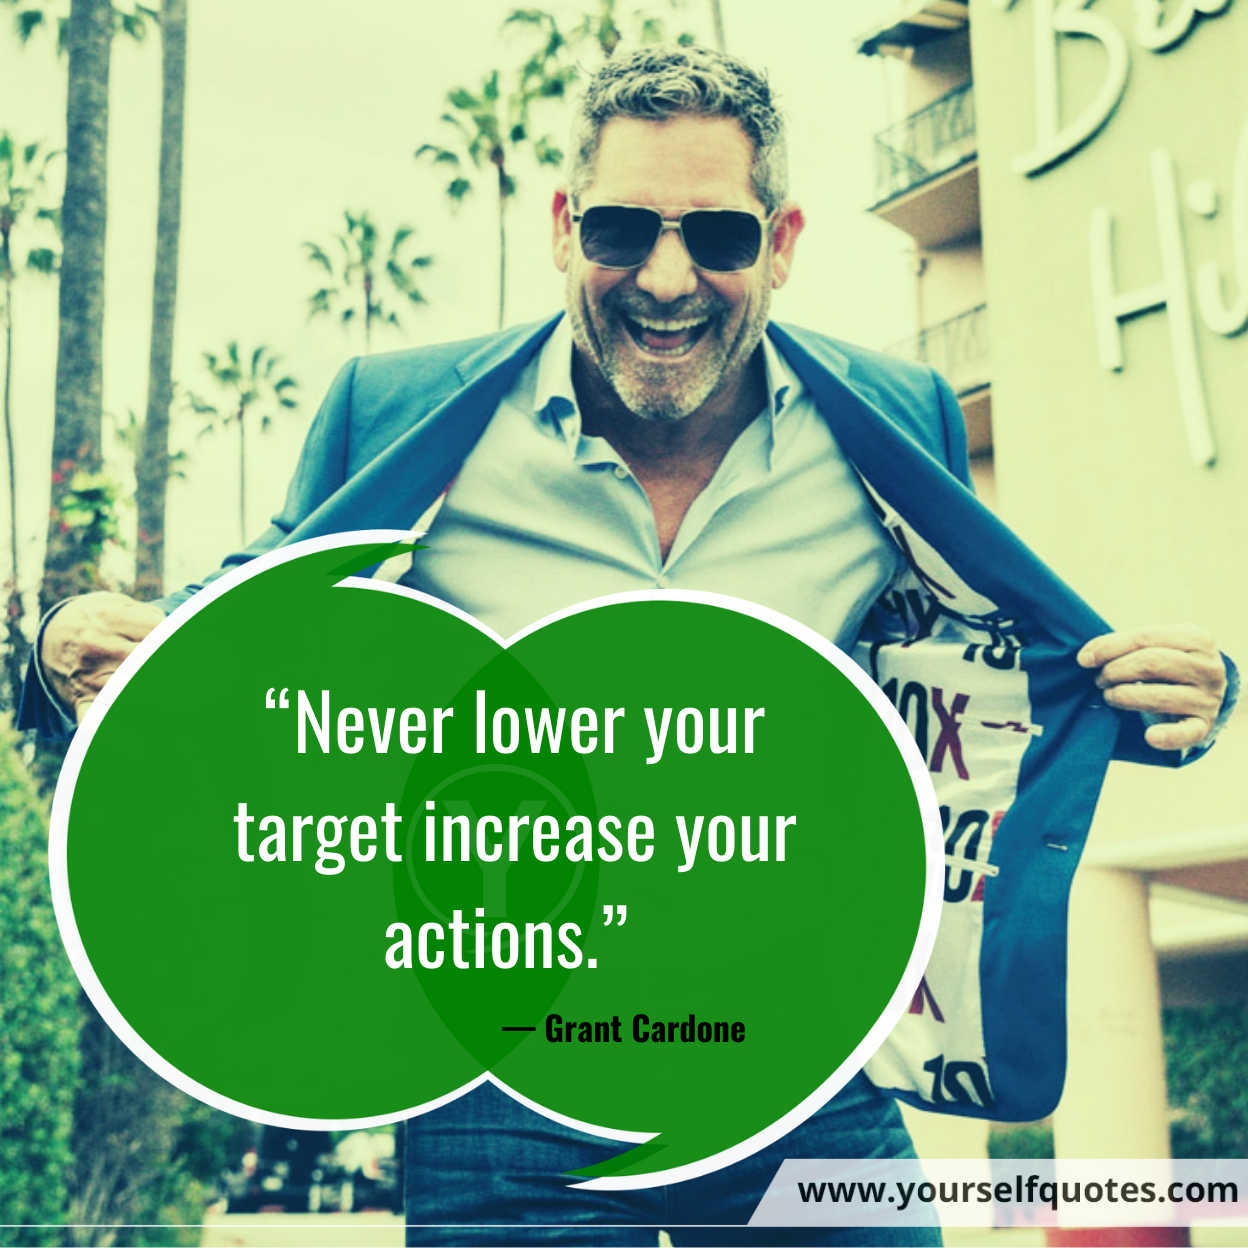 Grant Cardone Quotes on Actions